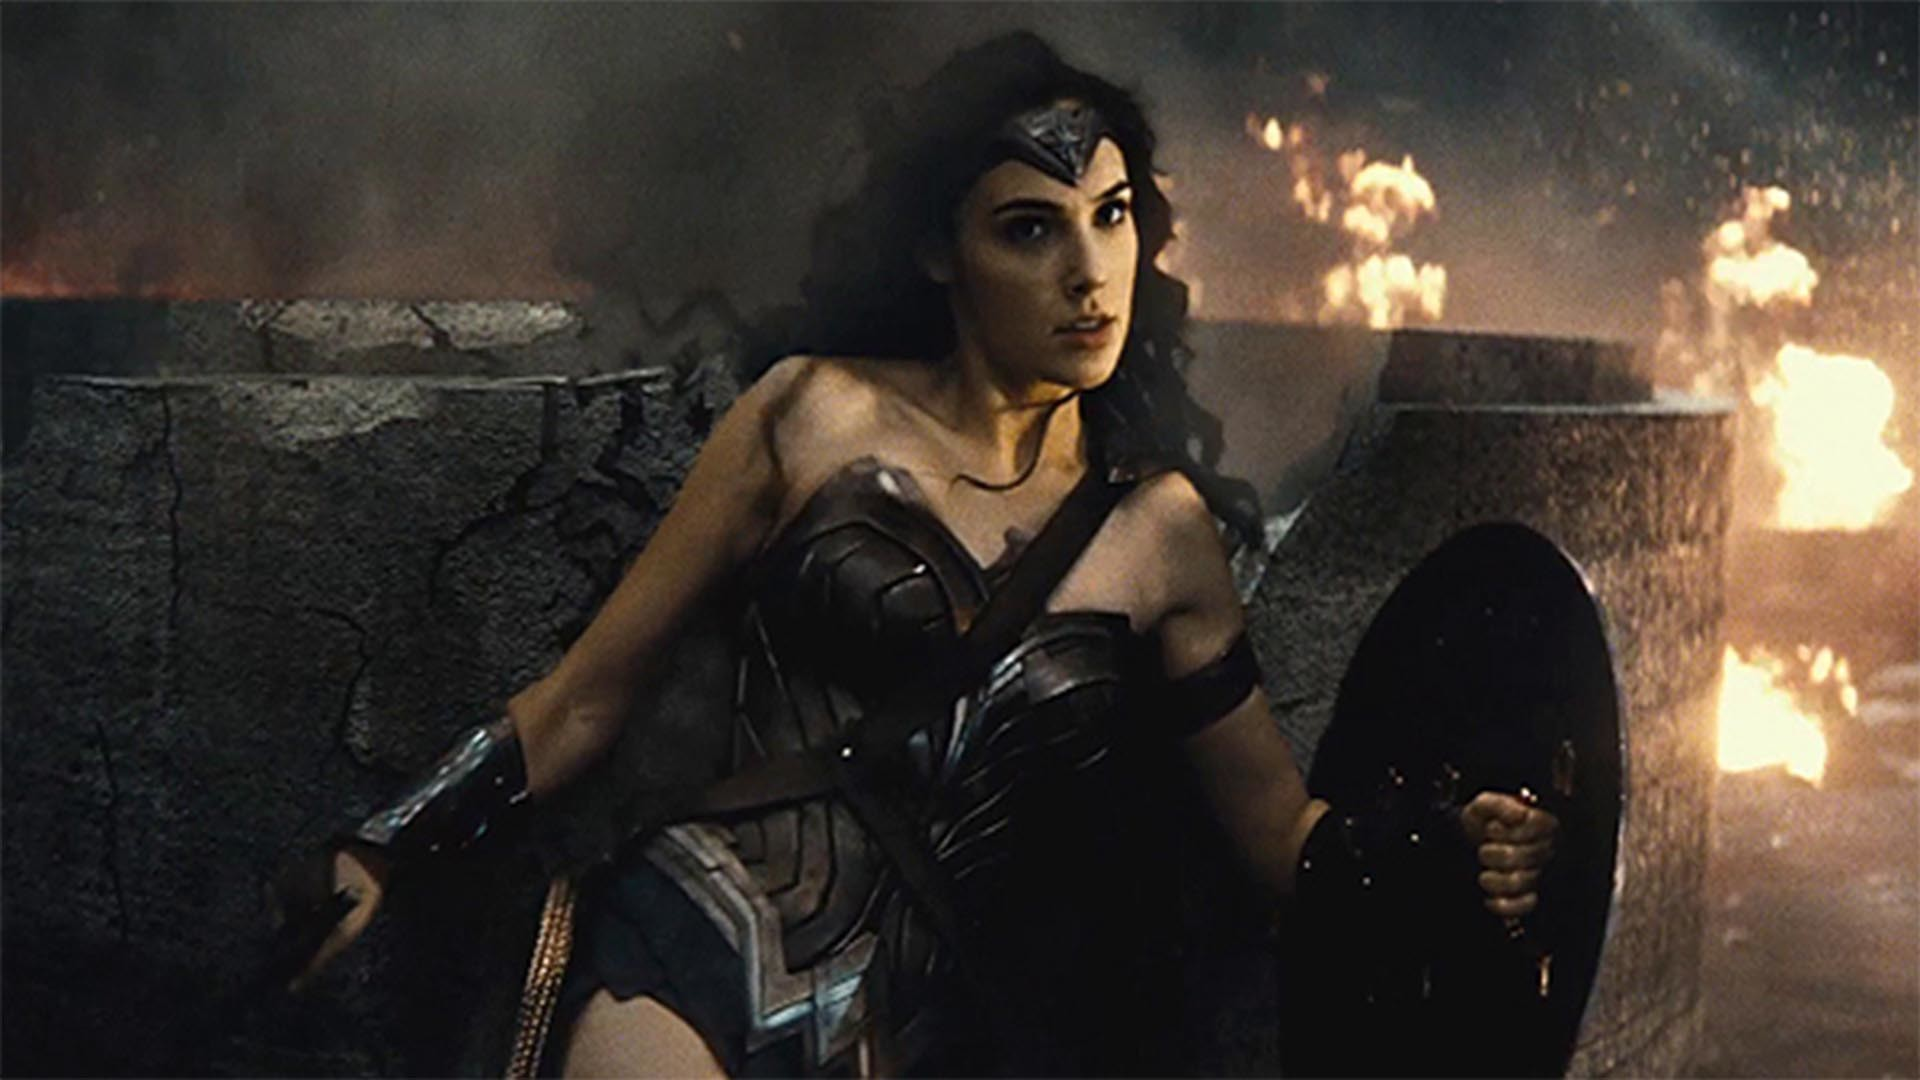 1920x1080 Wonder Woman film 2017 HD wallpapers free download